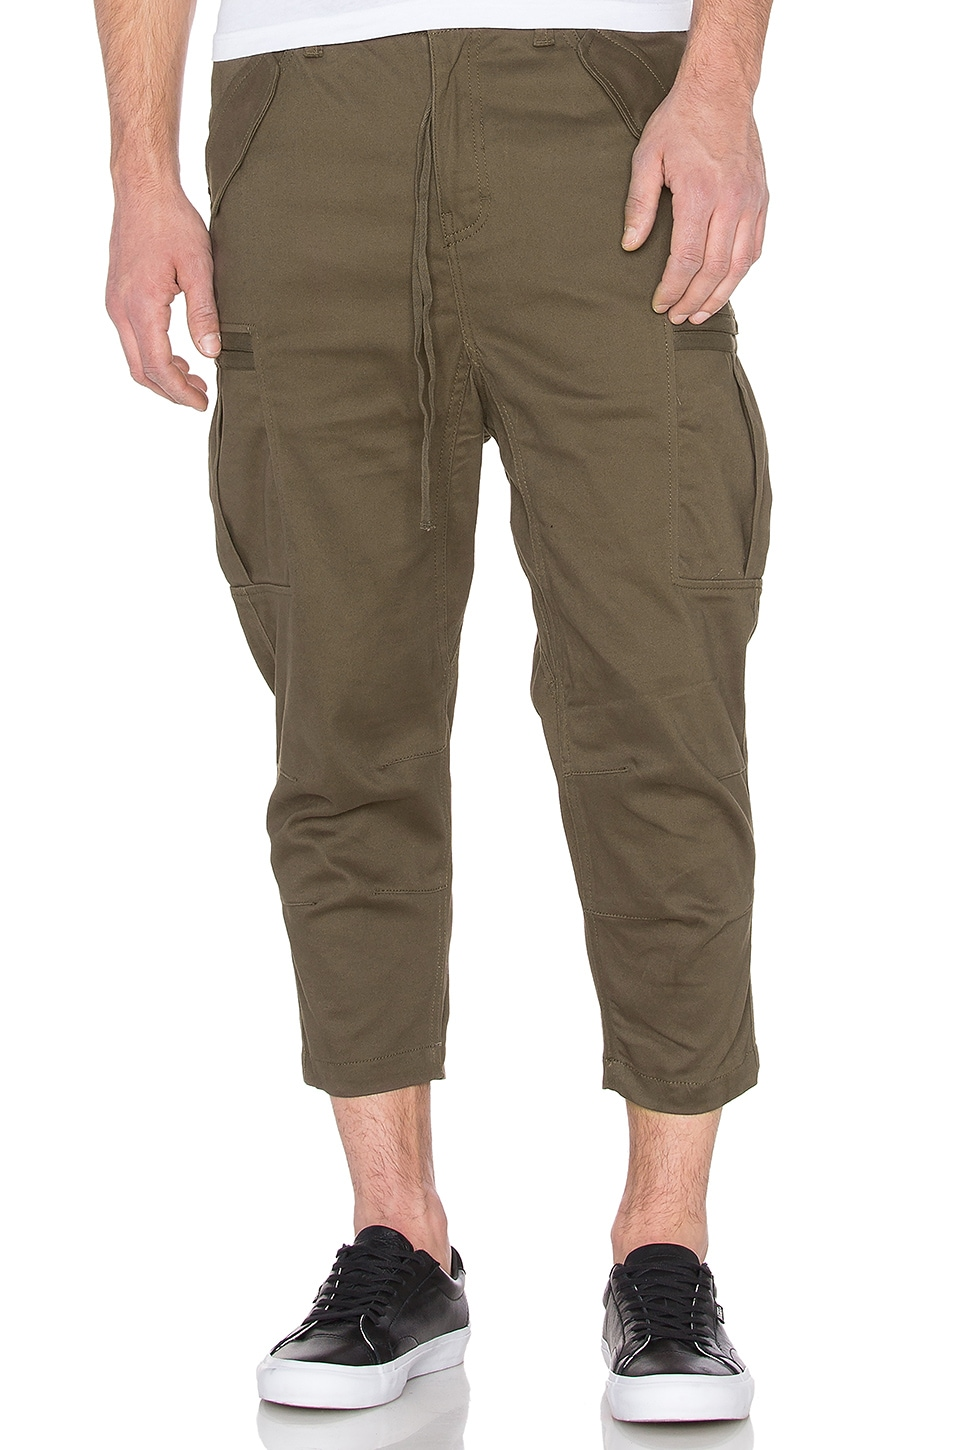 x Revolve Philson Pant by Publish